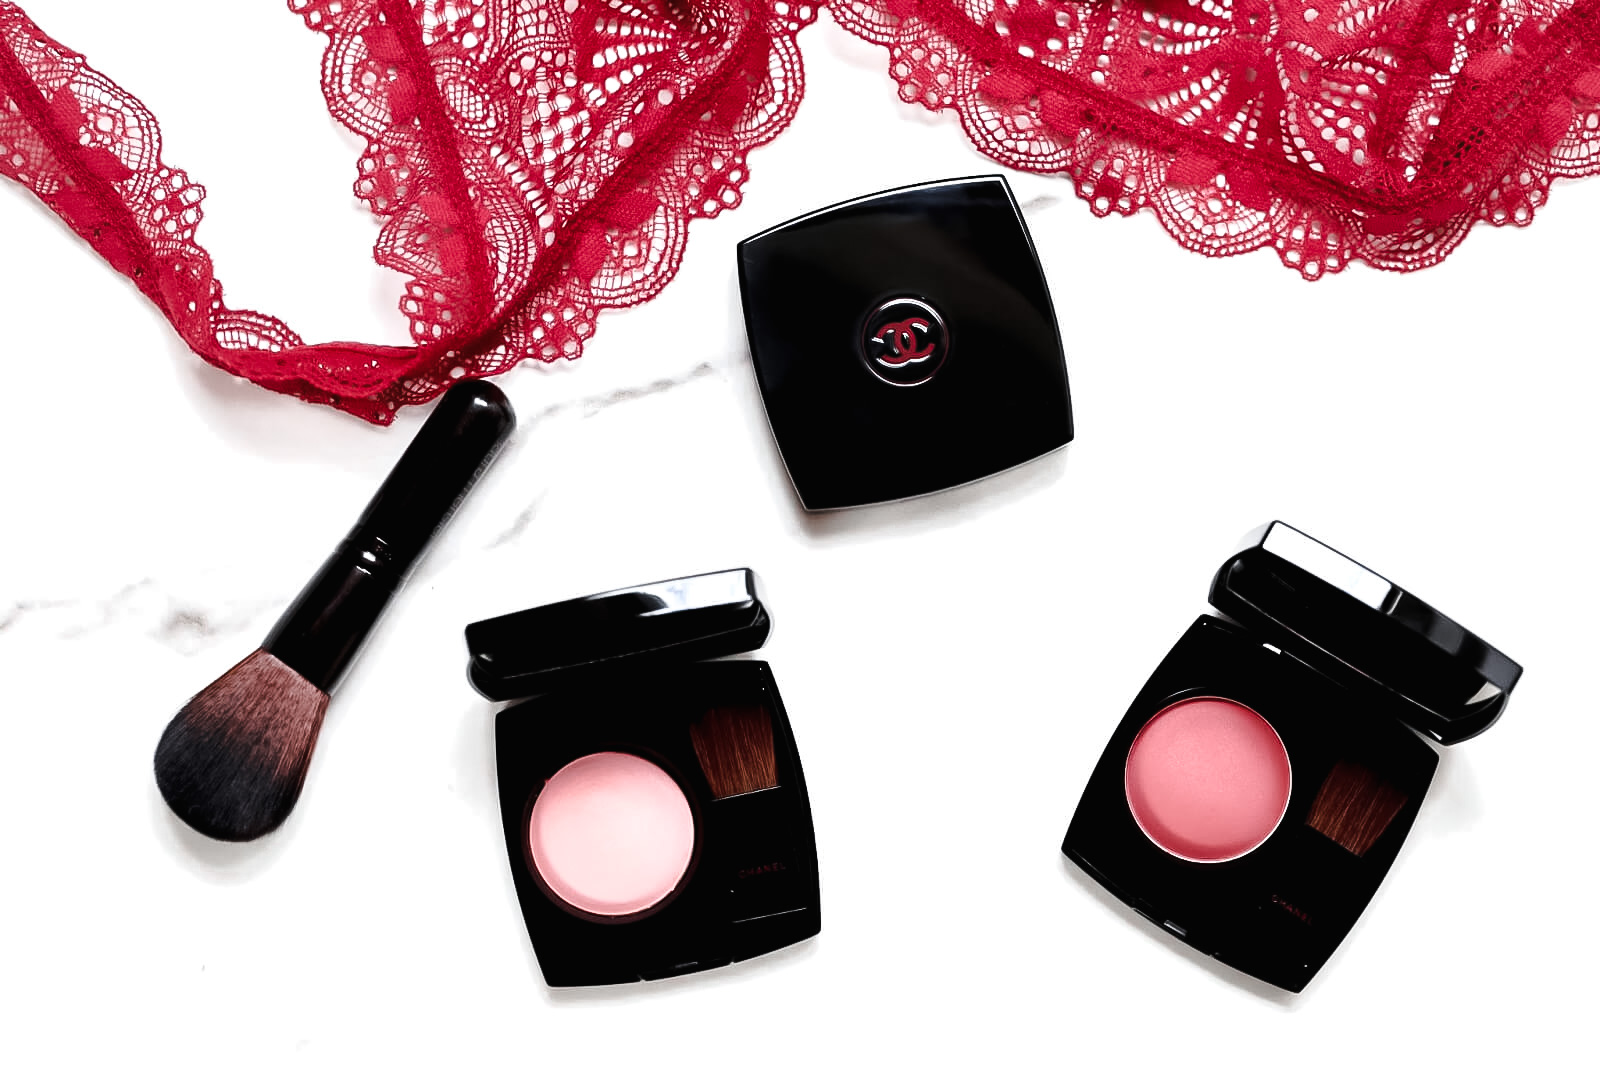 Chanel Joues Contraste Blush test